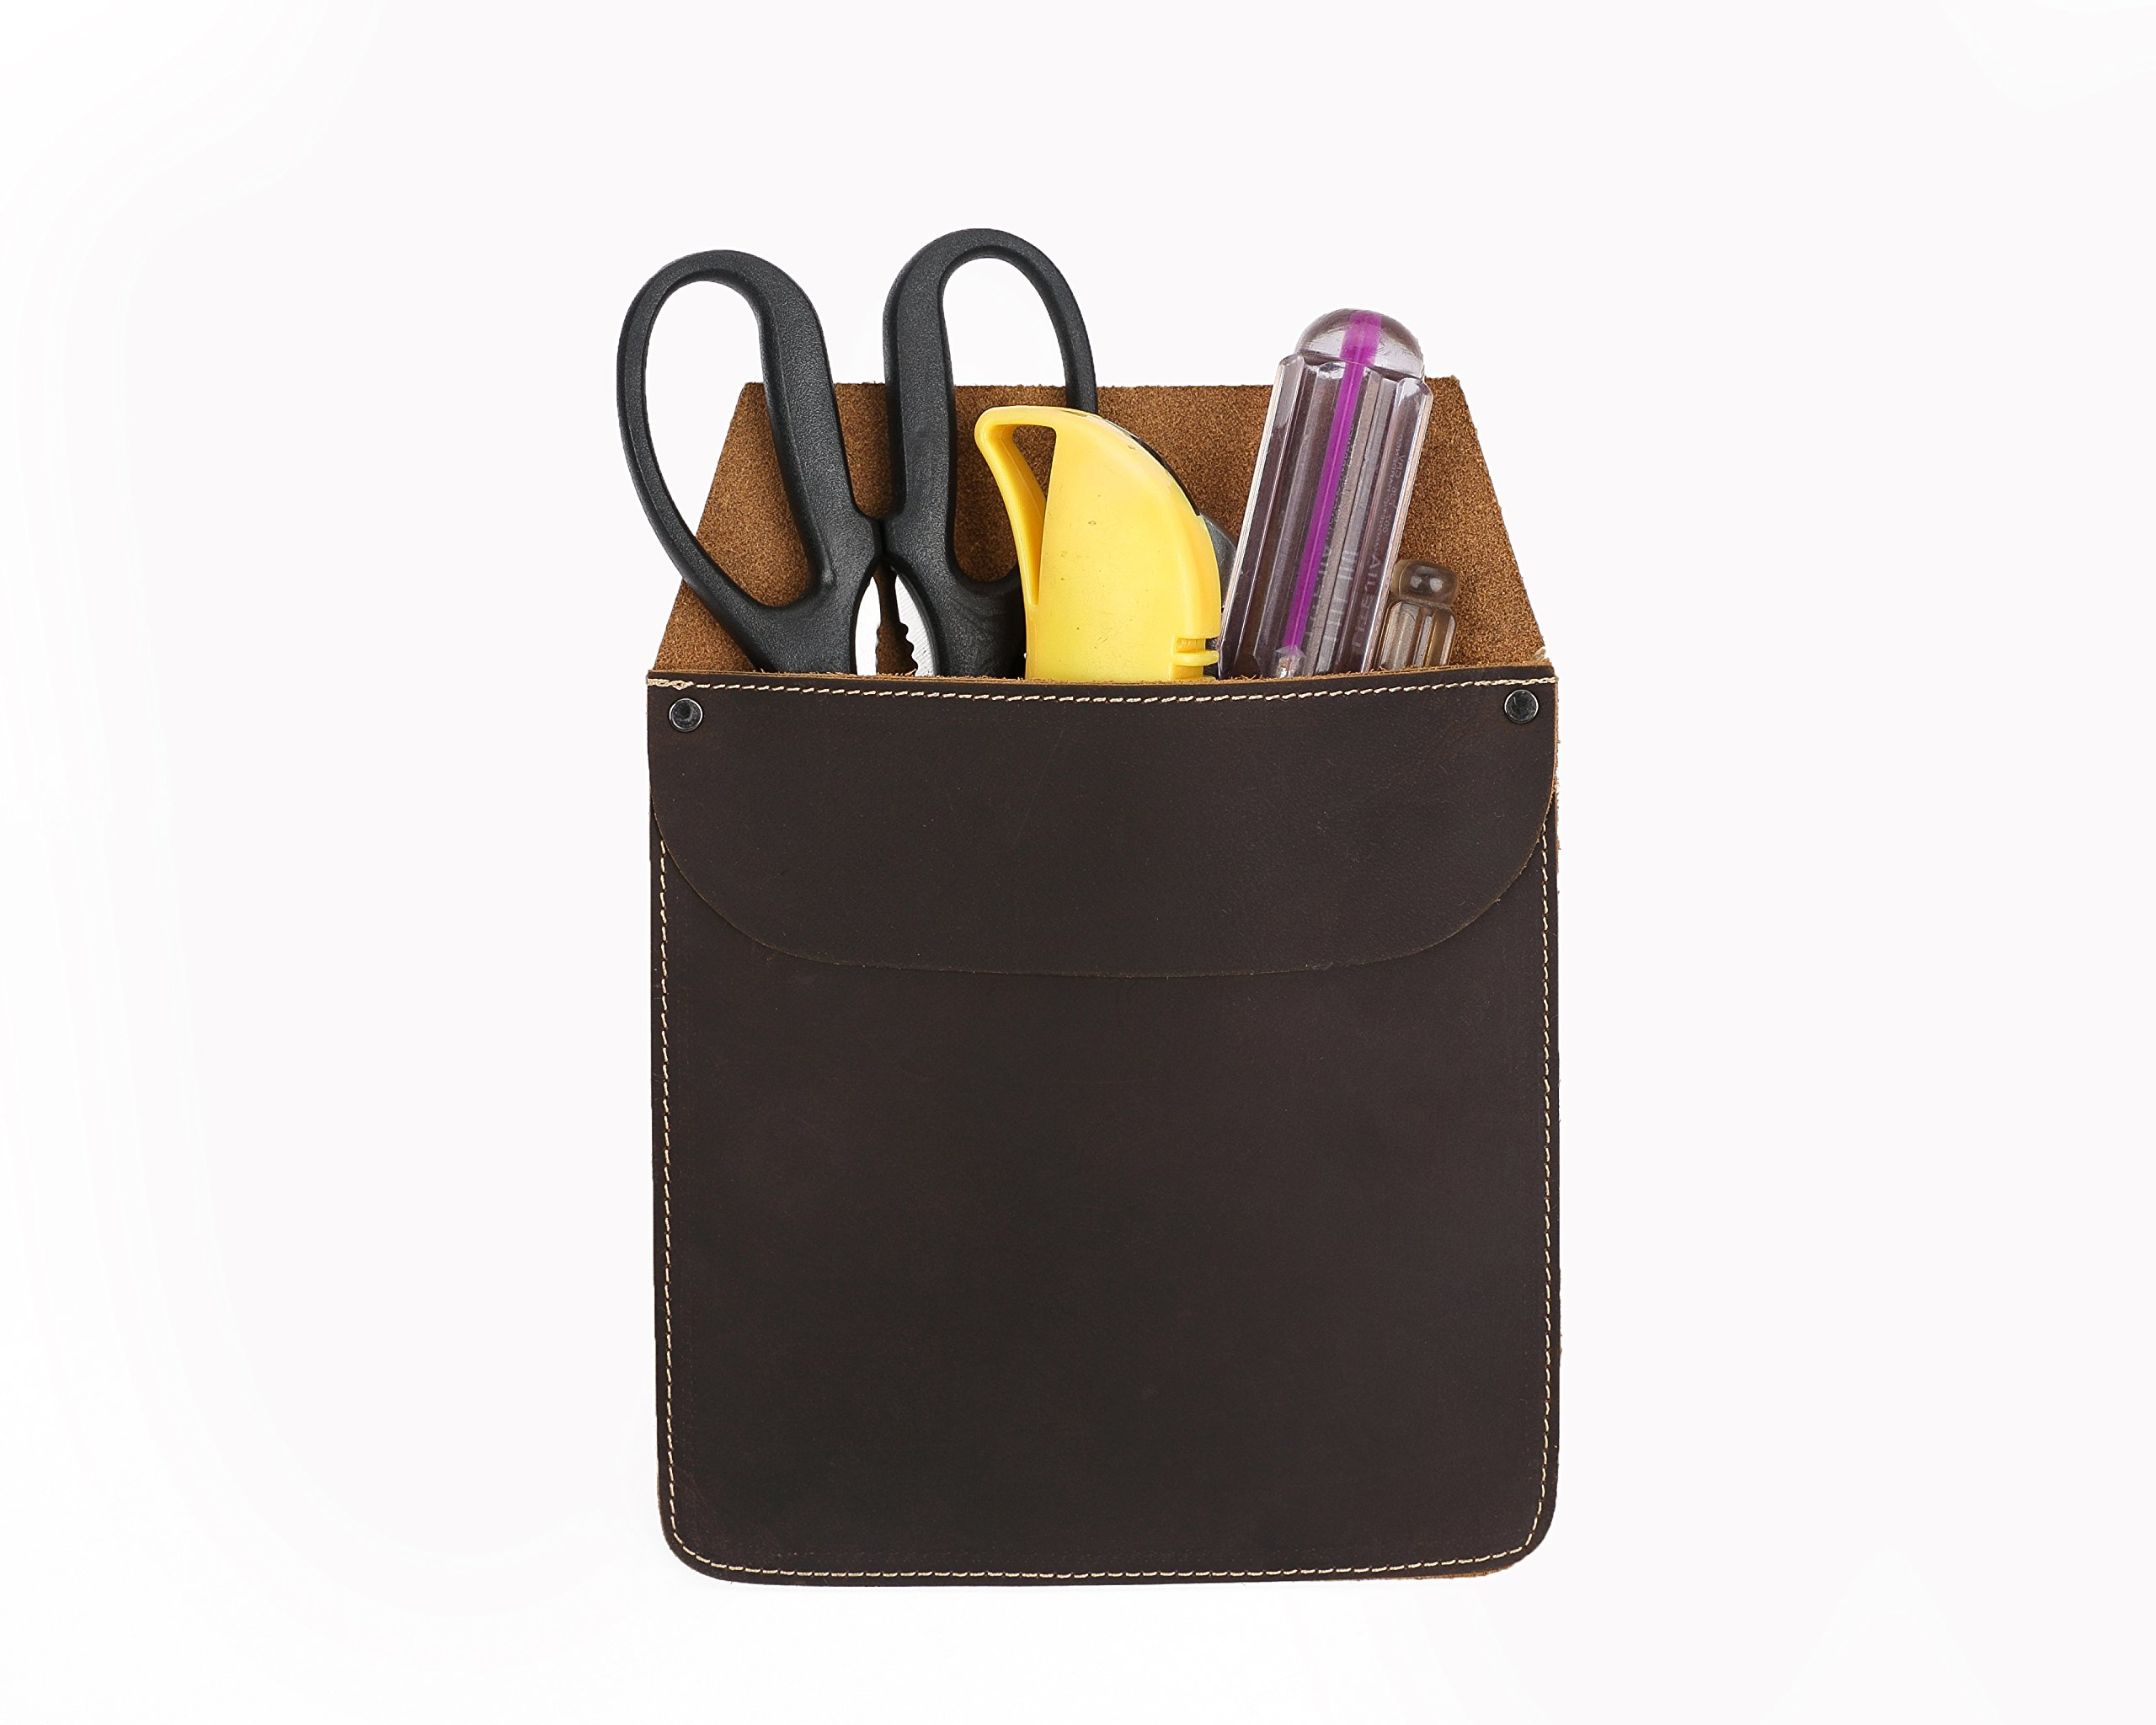 Genuine Leather Work Tool Pocket Chisel Tool Bag Waterproof Small Storage Pouch Organizer HBZ02-US (Brown)